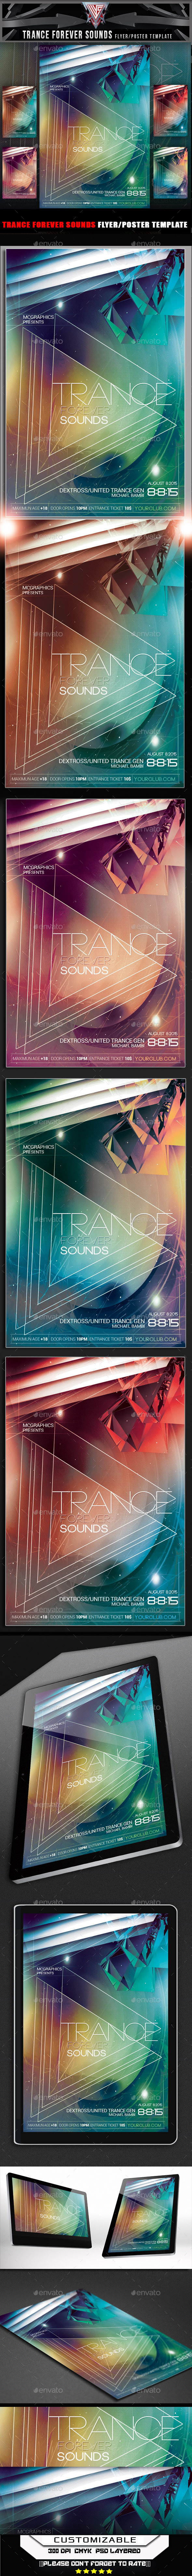 Trance Forever Sounds Flyer Template - Flyers Print Templates